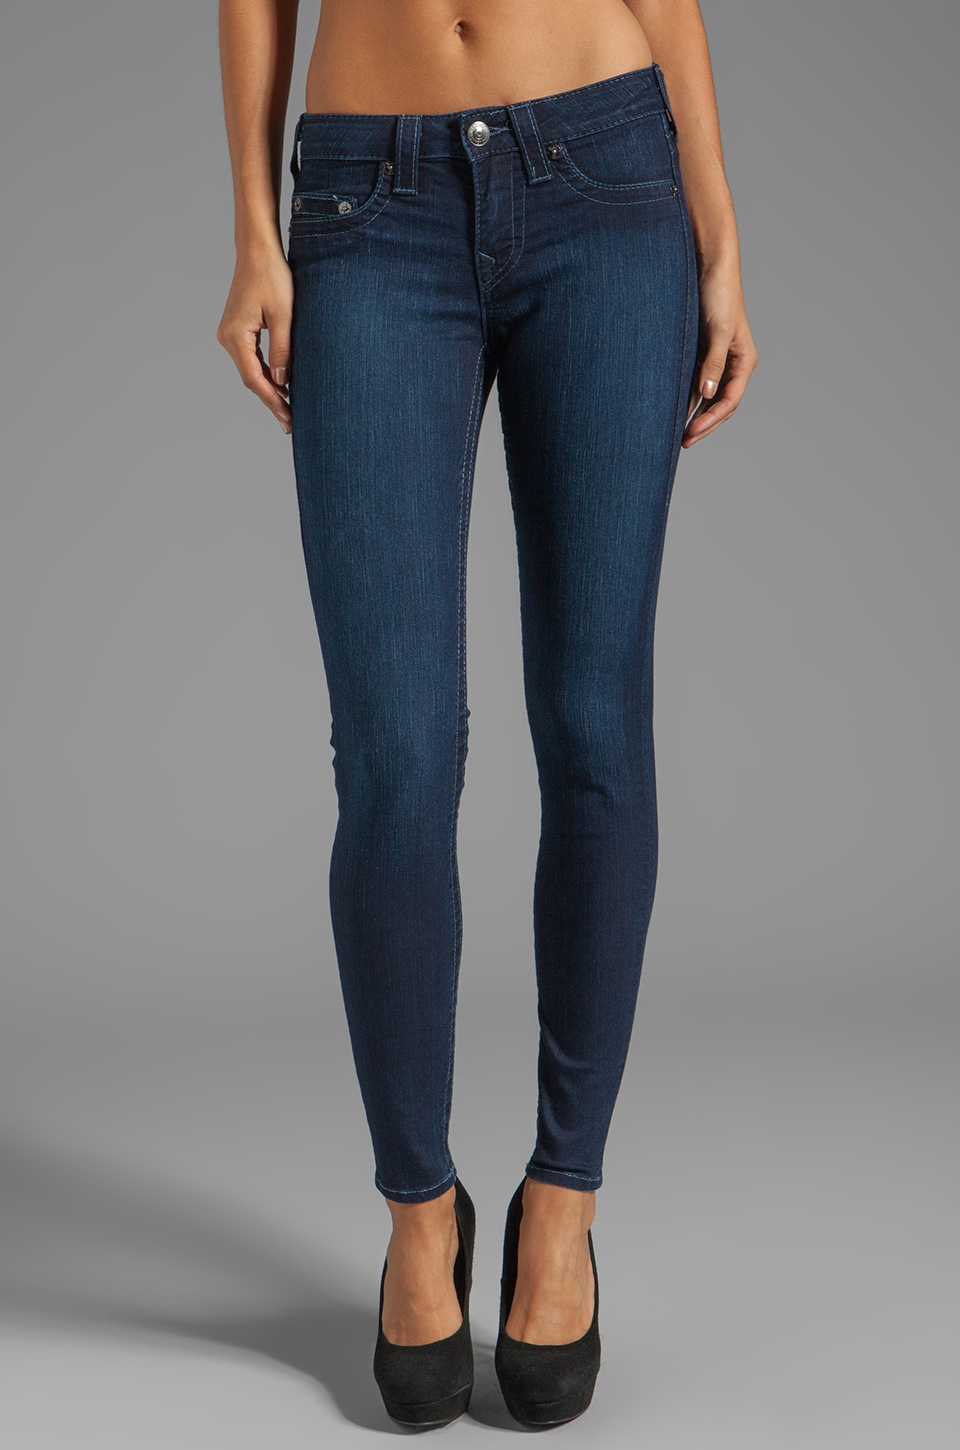 True Religion Halle High Rise Super Skinny in Starlight